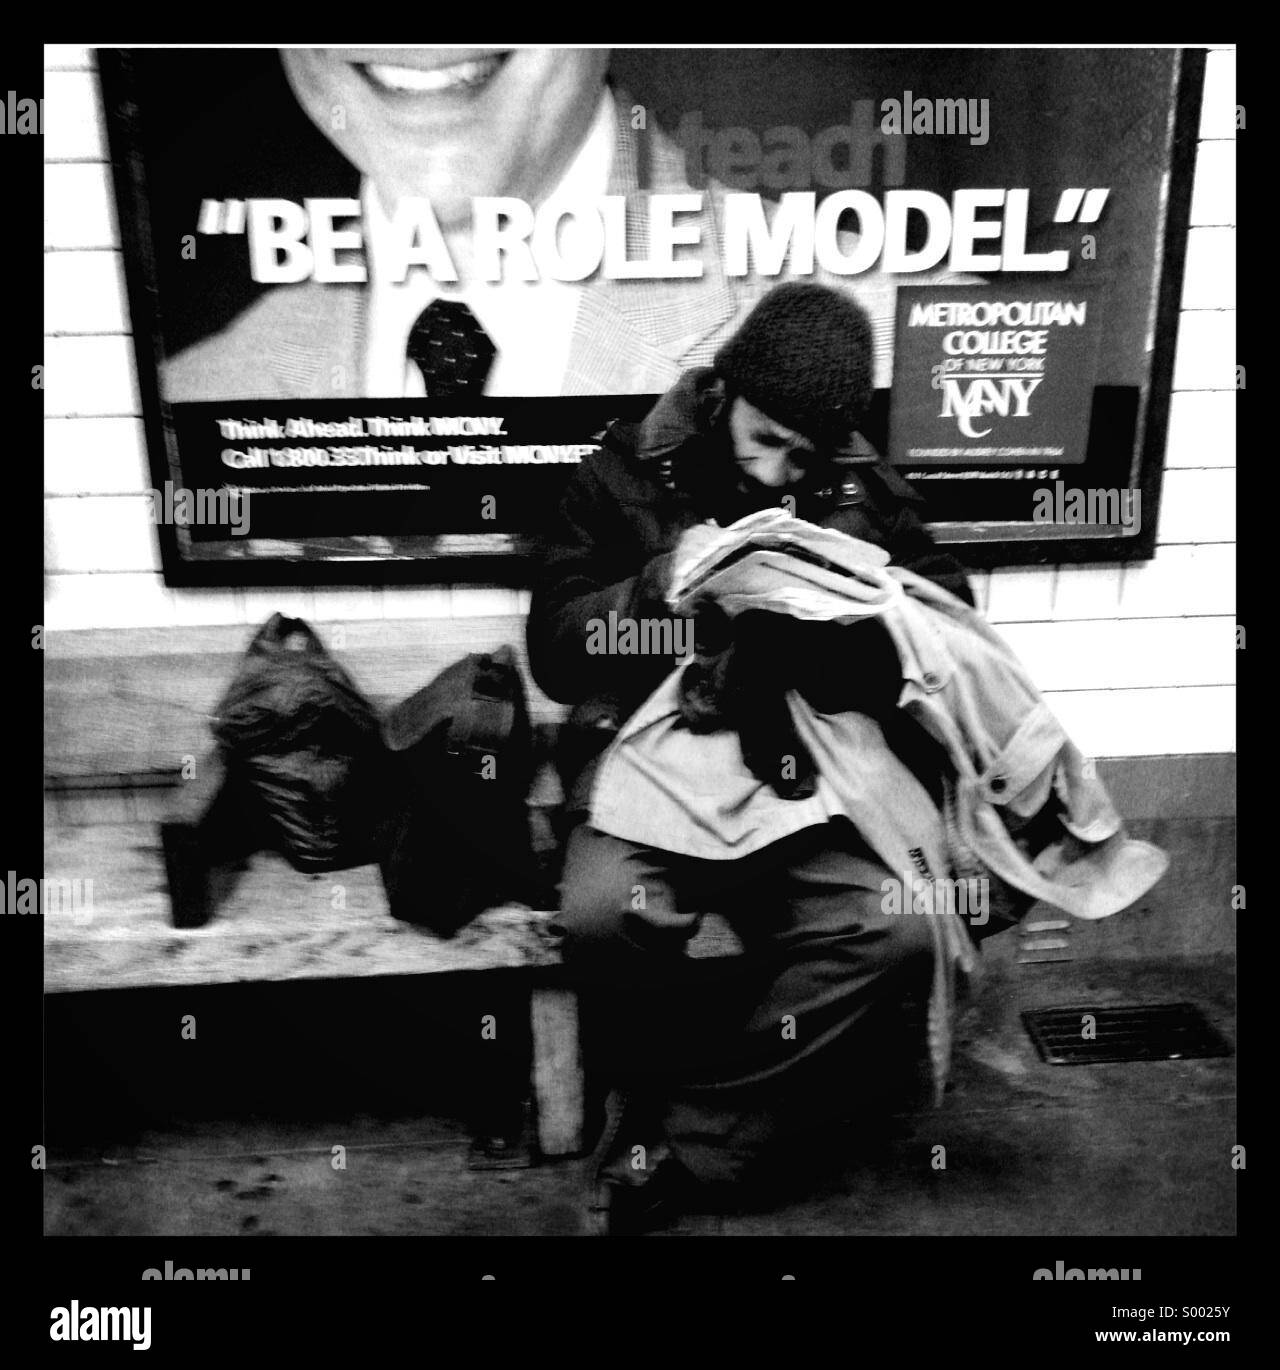 Be a role model, New York subway - Stock Image